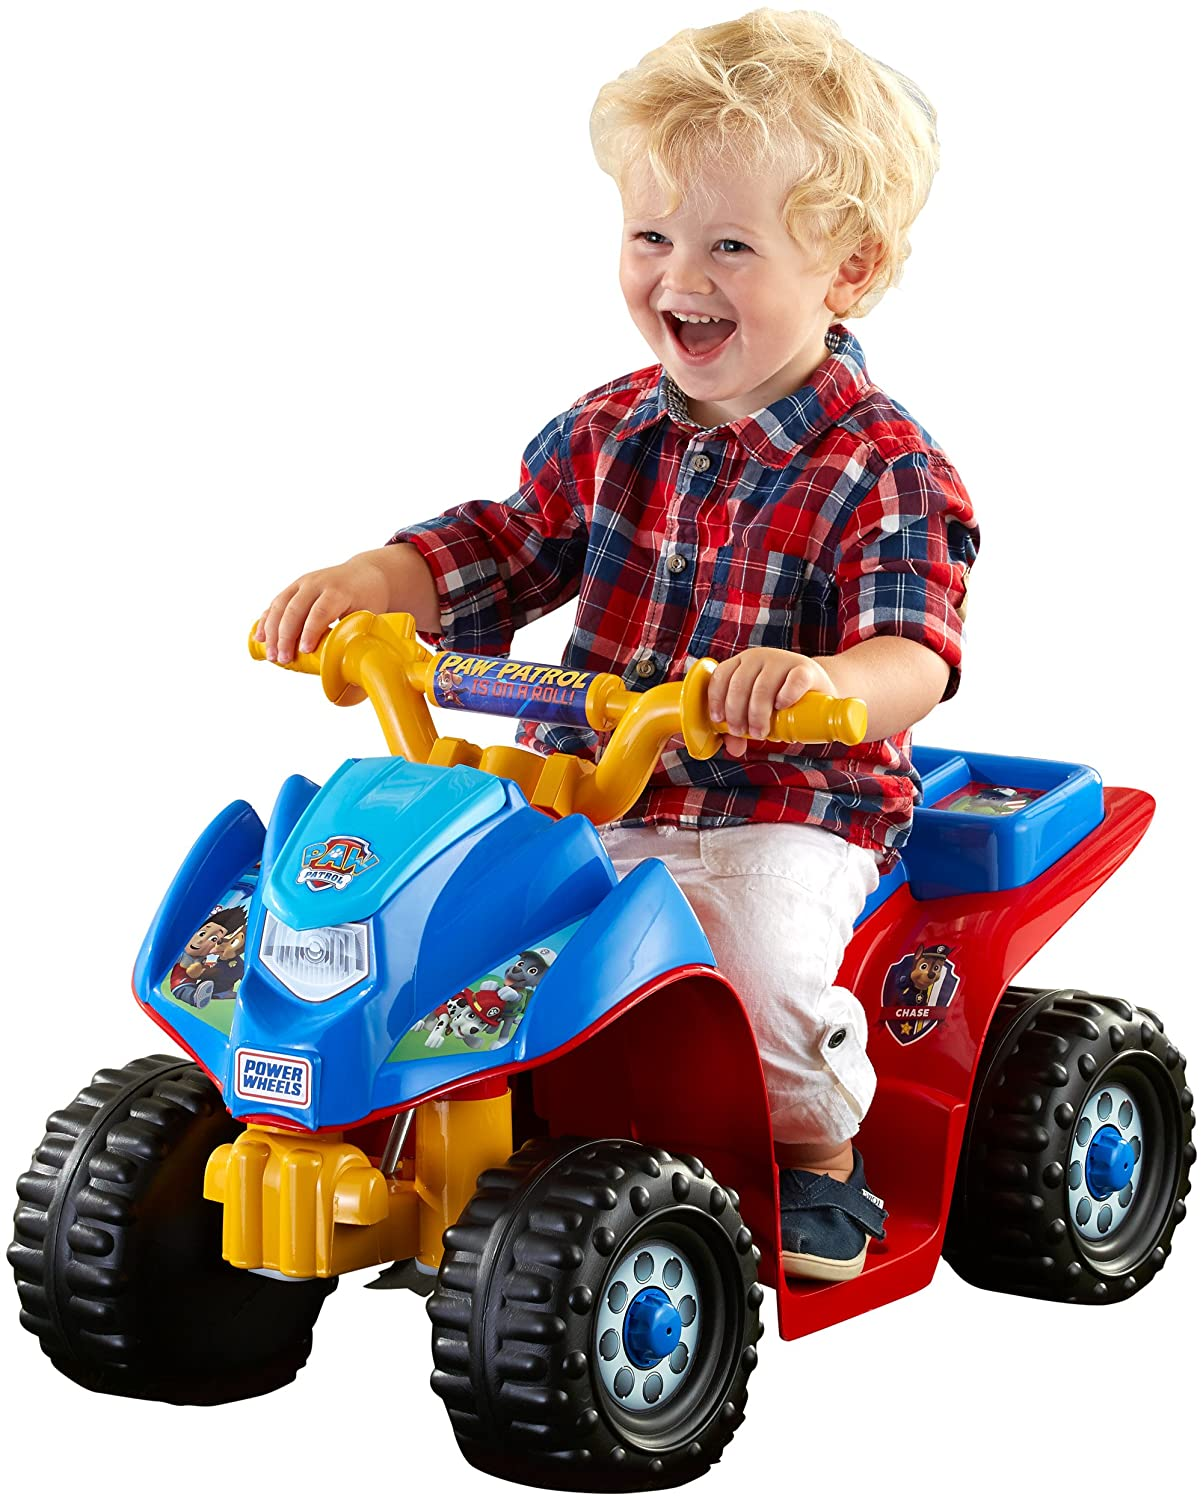 Toys For Toddlers : Paw patrol ride toys for toddlers puts them in the driving